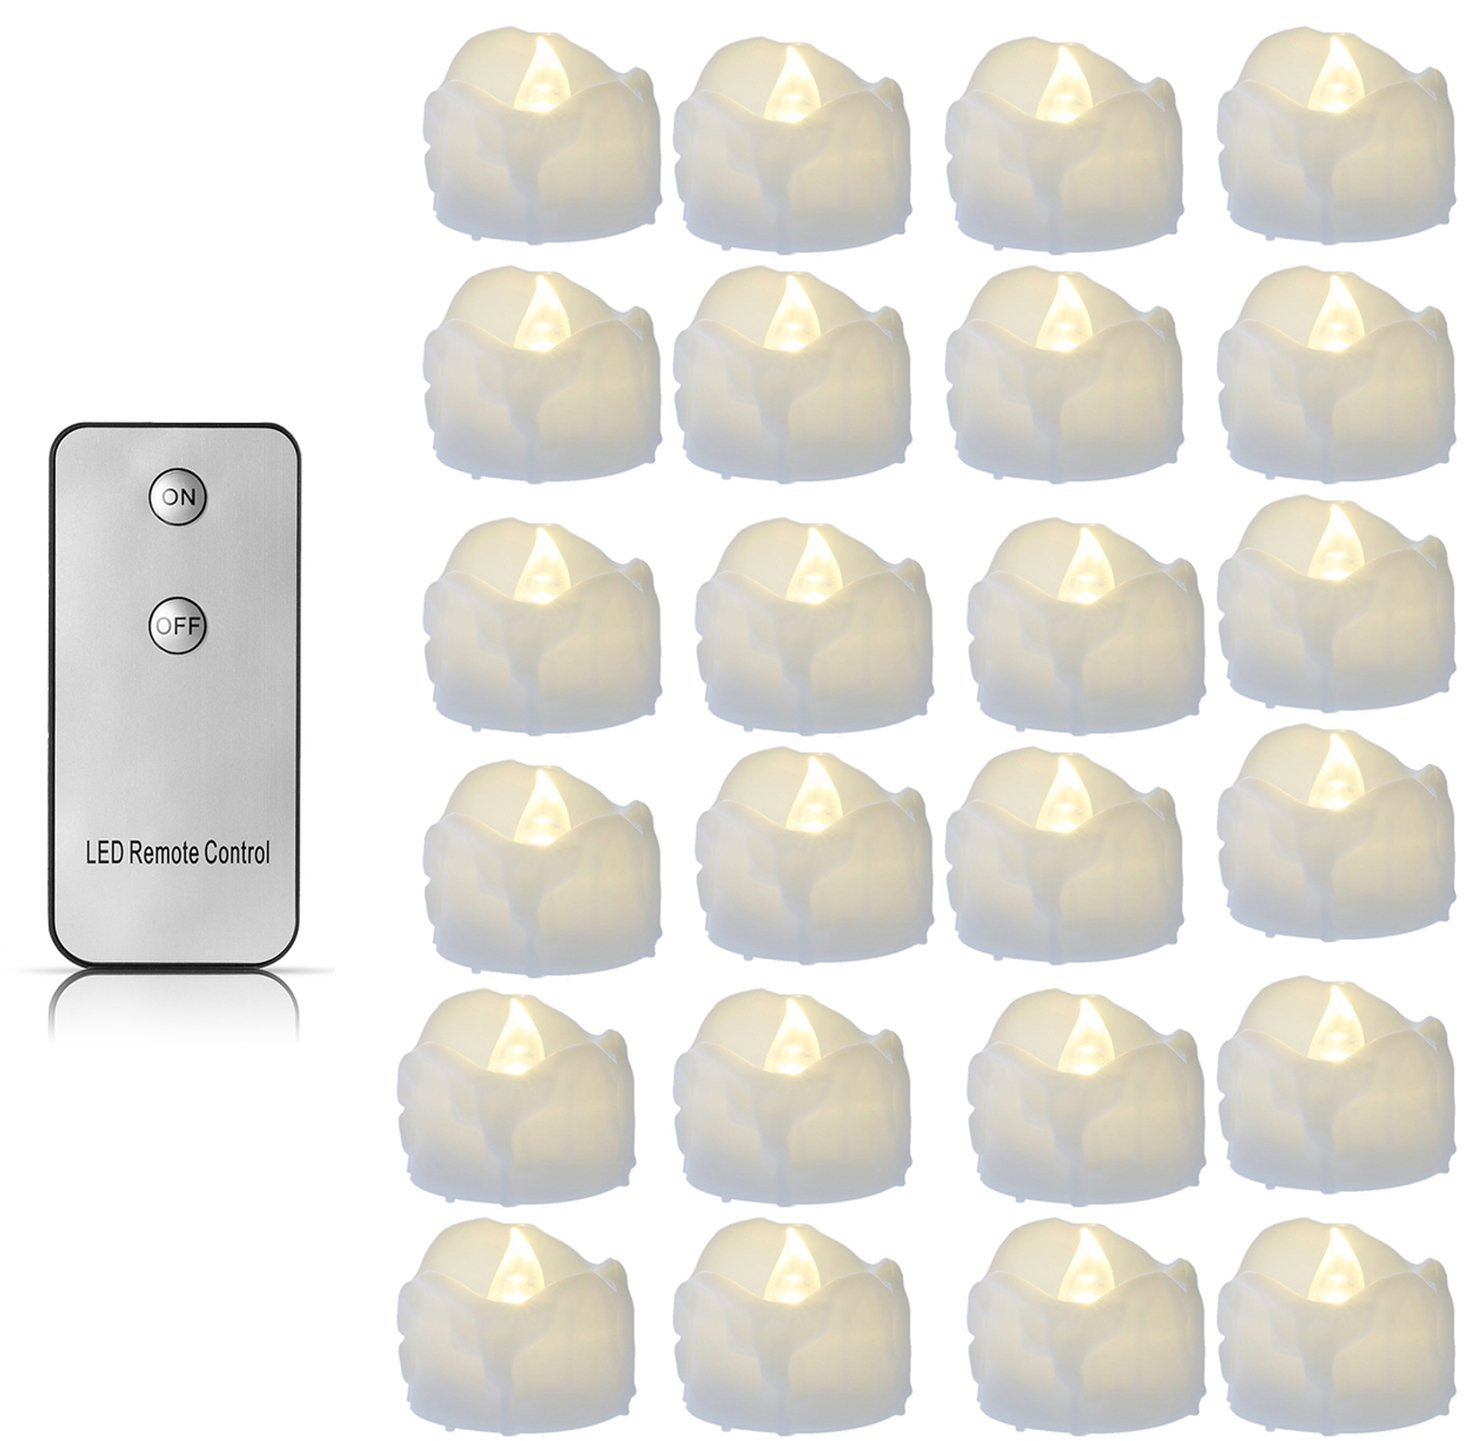 LED Candles Light, Windspeed Flameless LED Tea Light Candles with Remote Control, Looks Like Real Wax Candle, Perfect Tealights for Wedding Parties Home Decoration Warm White - 24 Packs